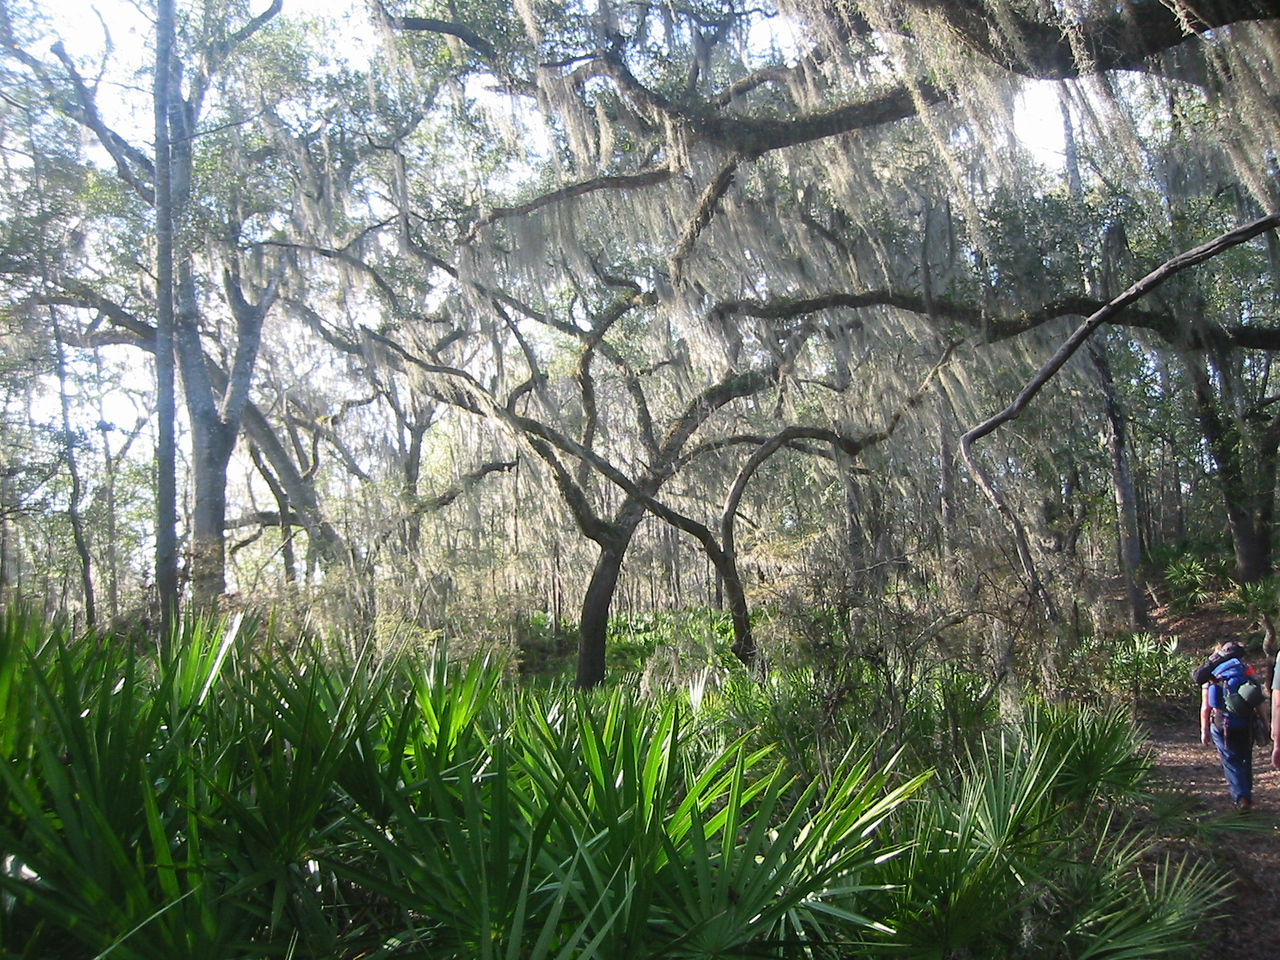 Along the Florida Trail west of Stephen Foster. PHOTO CREDIT: FTA / Frank Bouchard